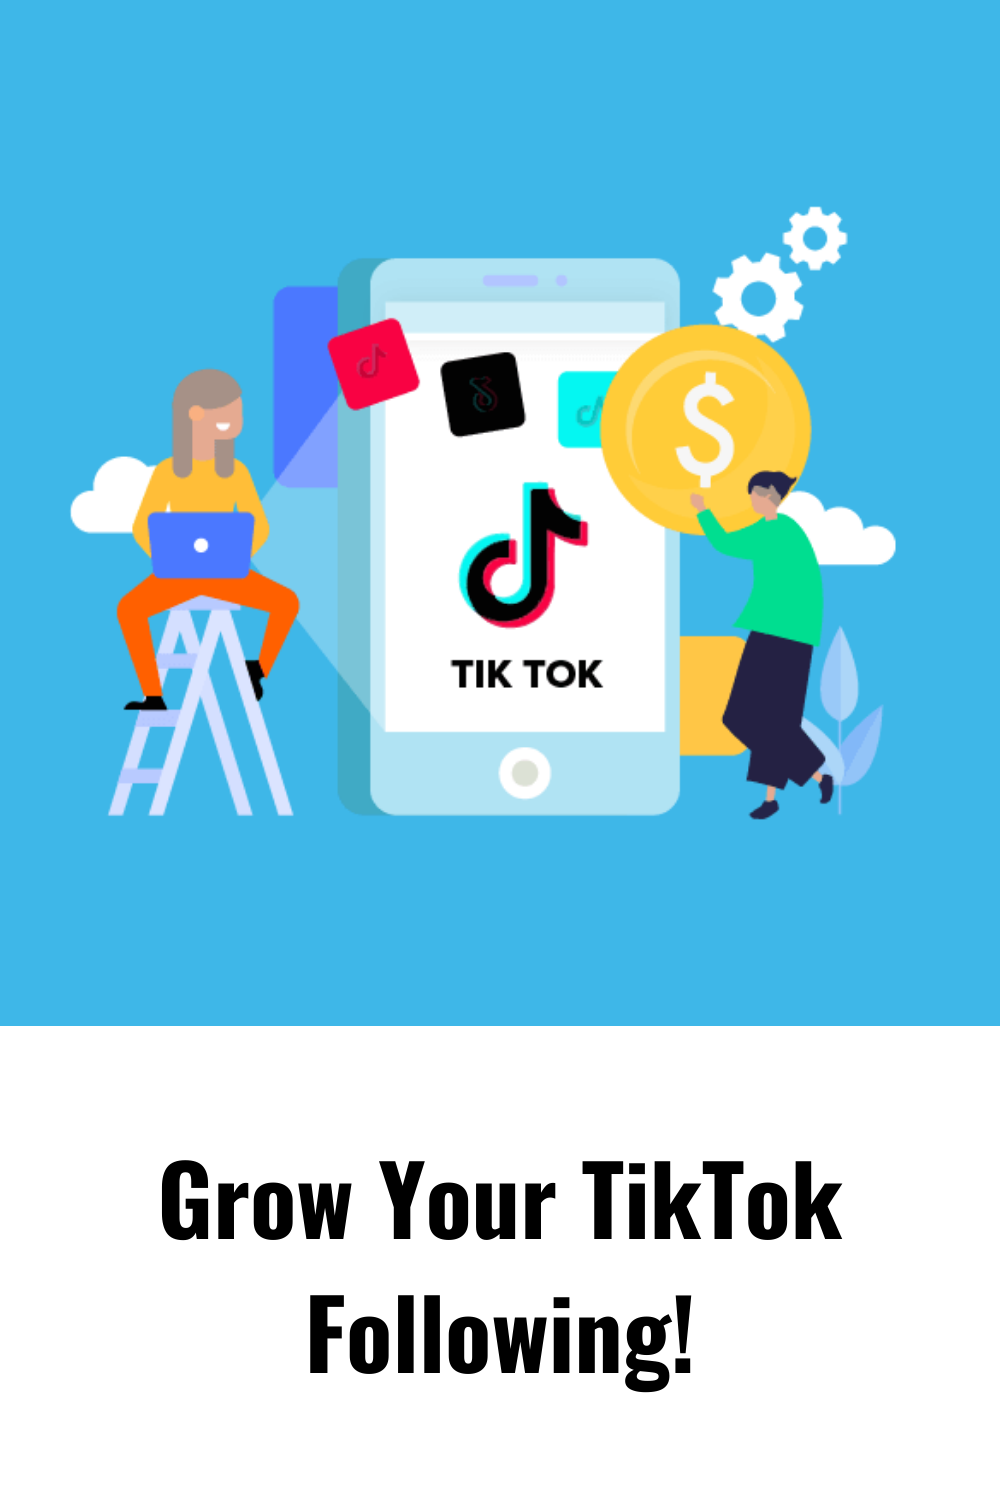 Grow Your Tiktok Following This Or That Questions Social Media Platforms Things To Come